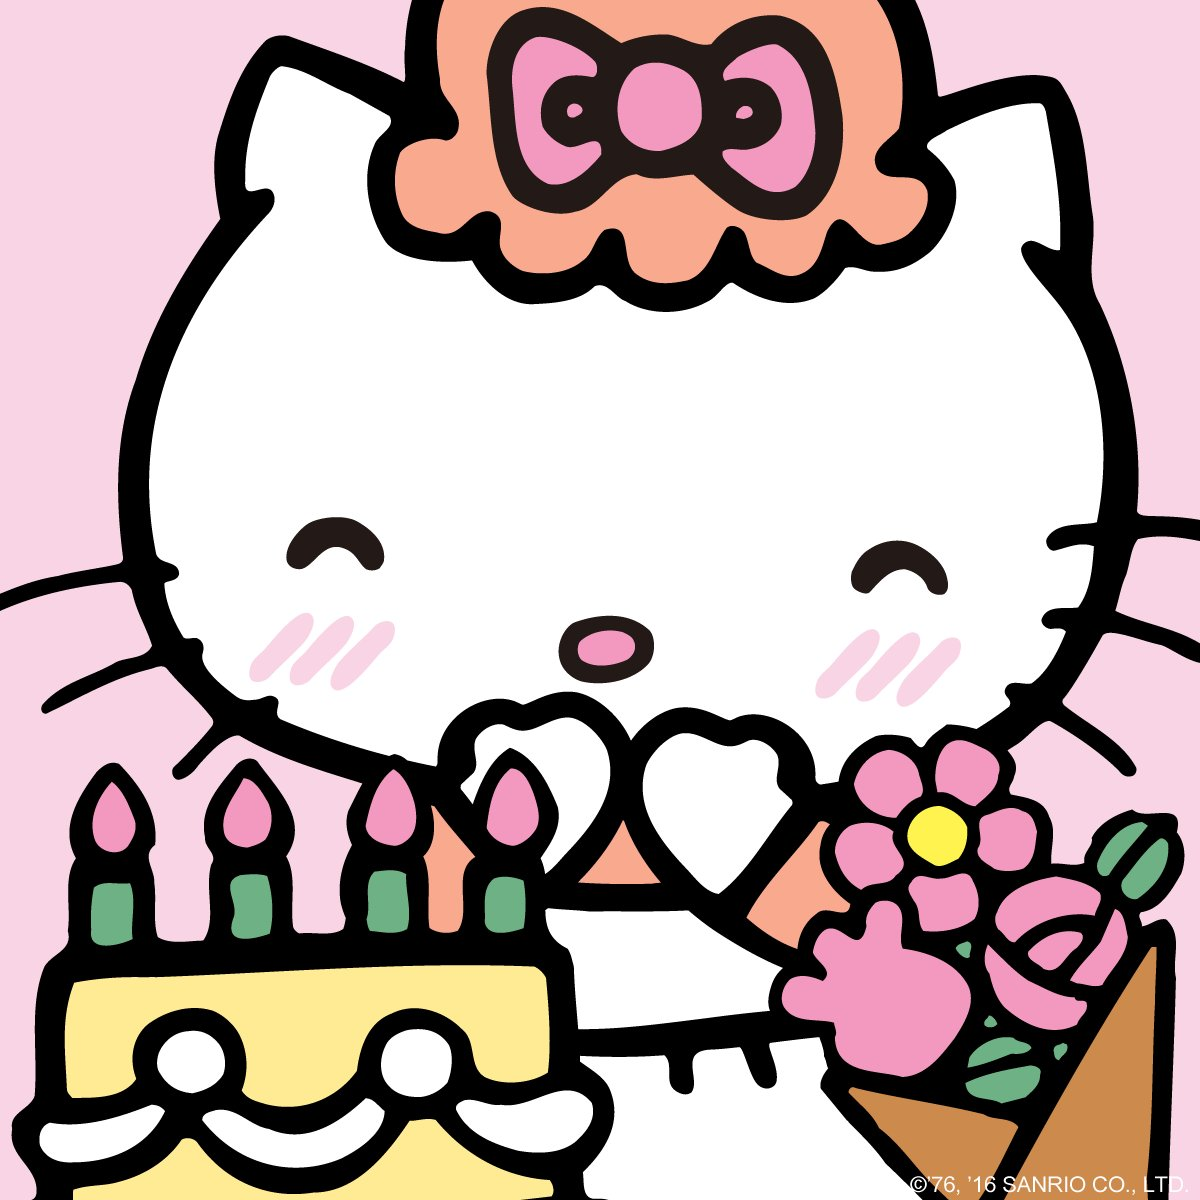 #HappyBirthday to @HelloKitty's mama, Mary White! https://t.co/KijKxfXjNP